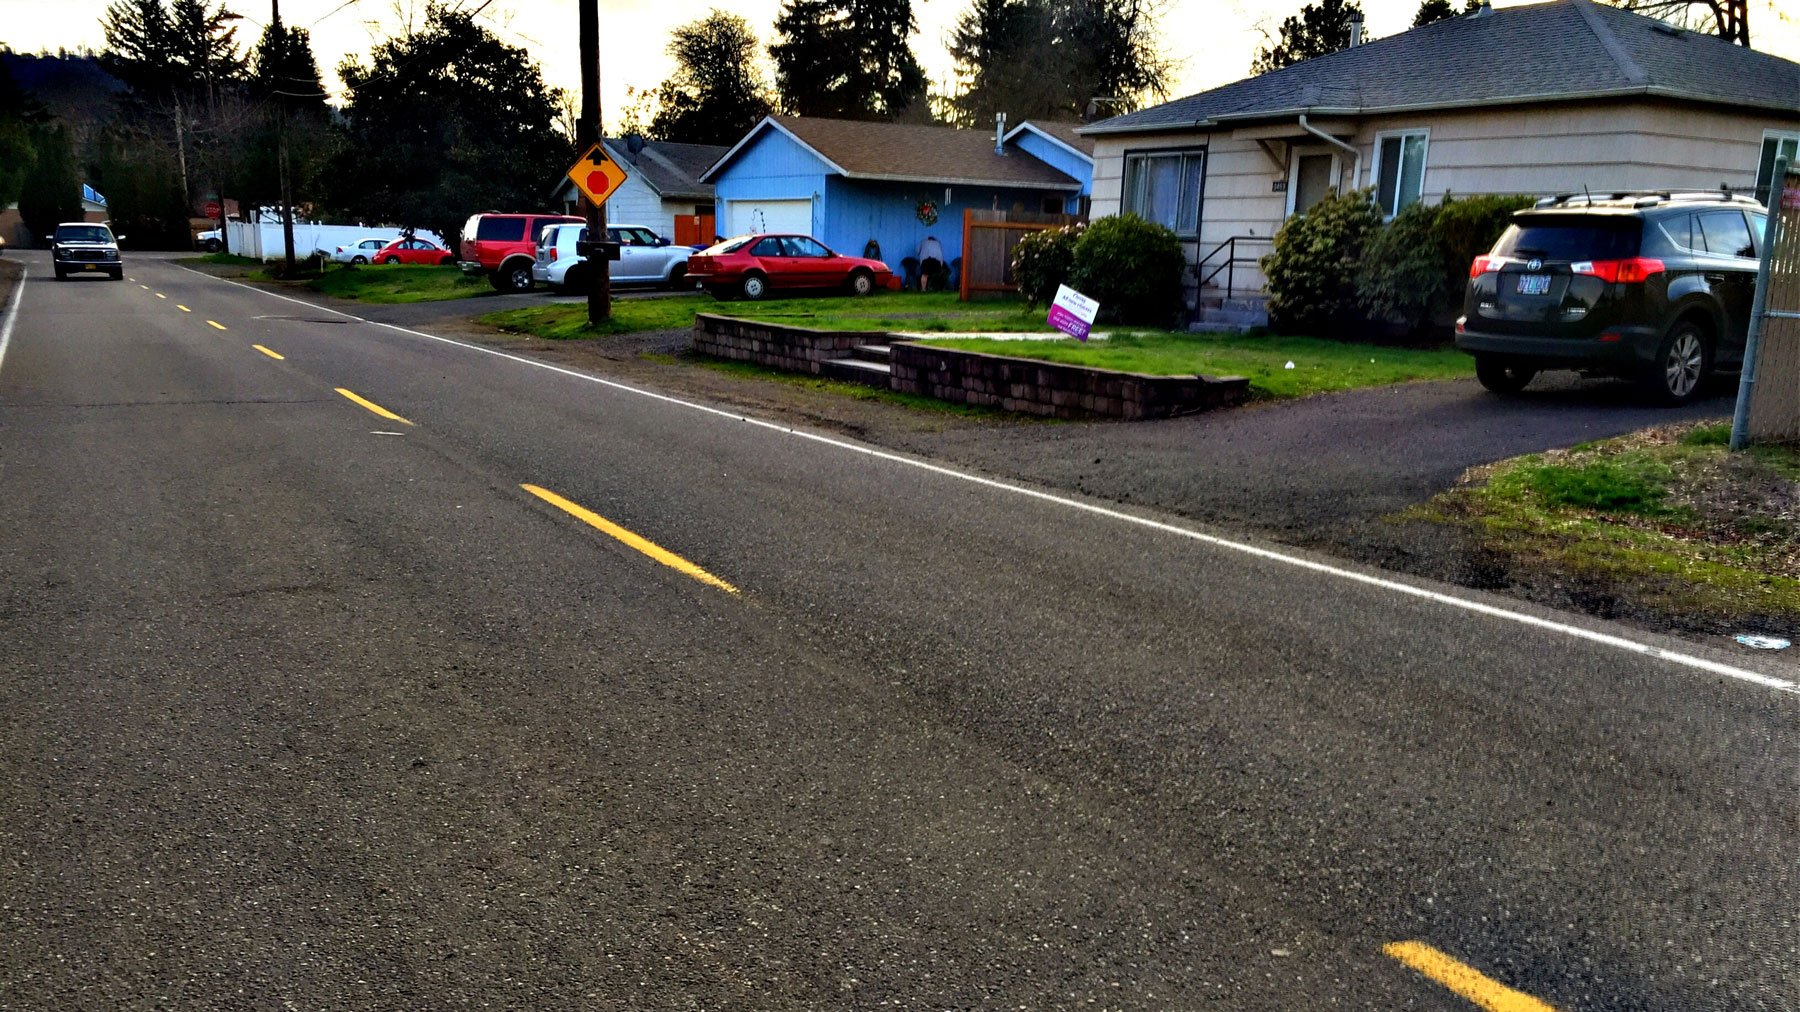 The scene on the 5300 block of SE 111th Ave. following a shooting Wednesday afternoon. (KPTV)